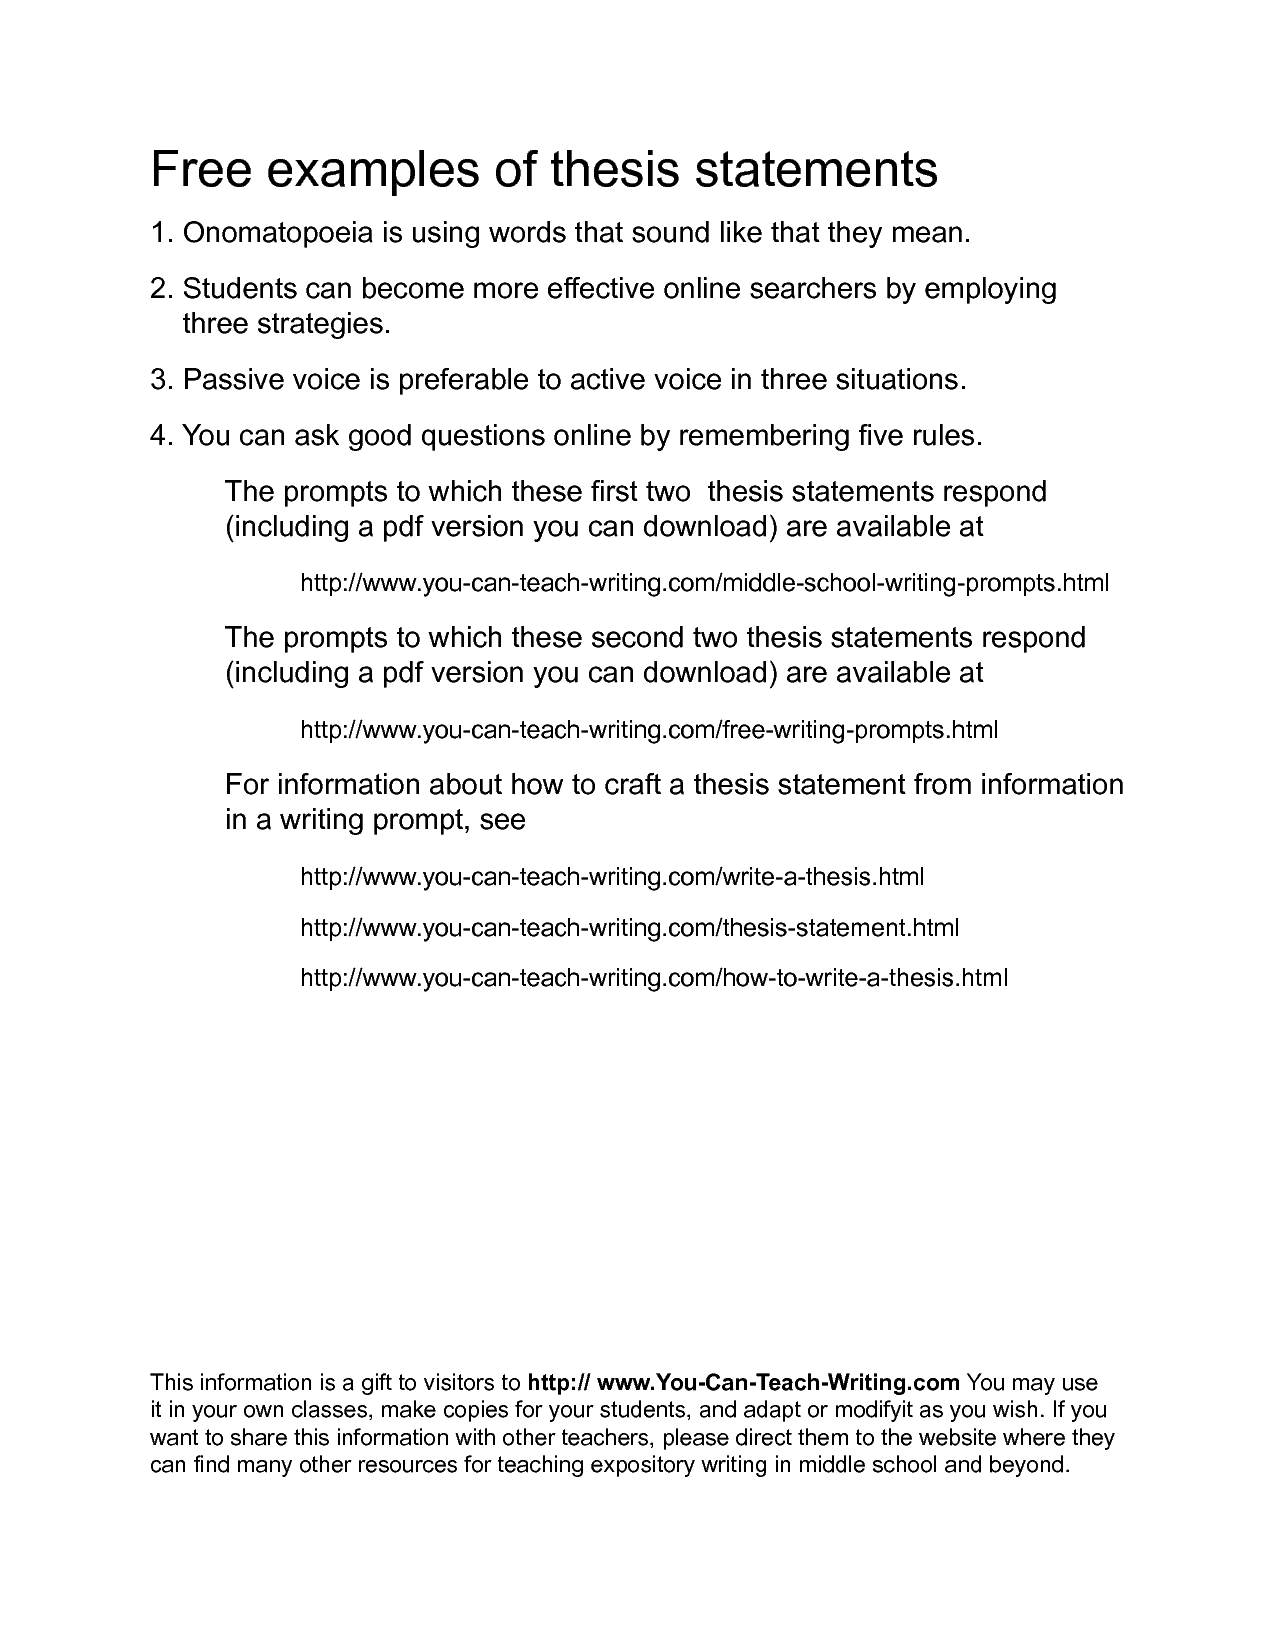 Essay Writing Examples For High School  Essay About English Class also How To Write A Proposal Essay Outline Purpose Of A Thesis Statement  Thesis  Thesis Statement  Argumentative Essay Proposal